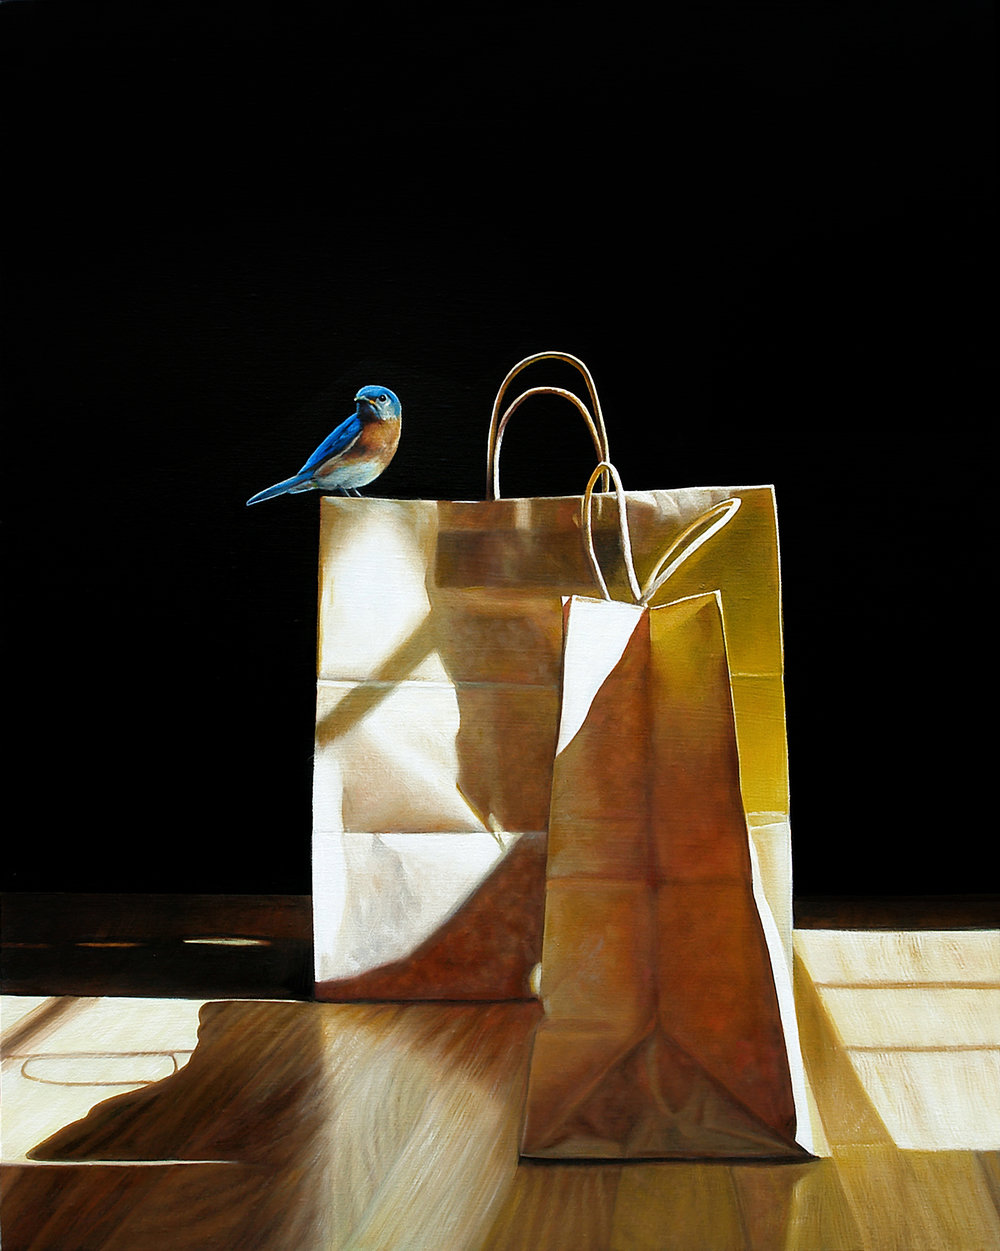 Perch No. 2  |  24 x 30  |  Oil on canvas